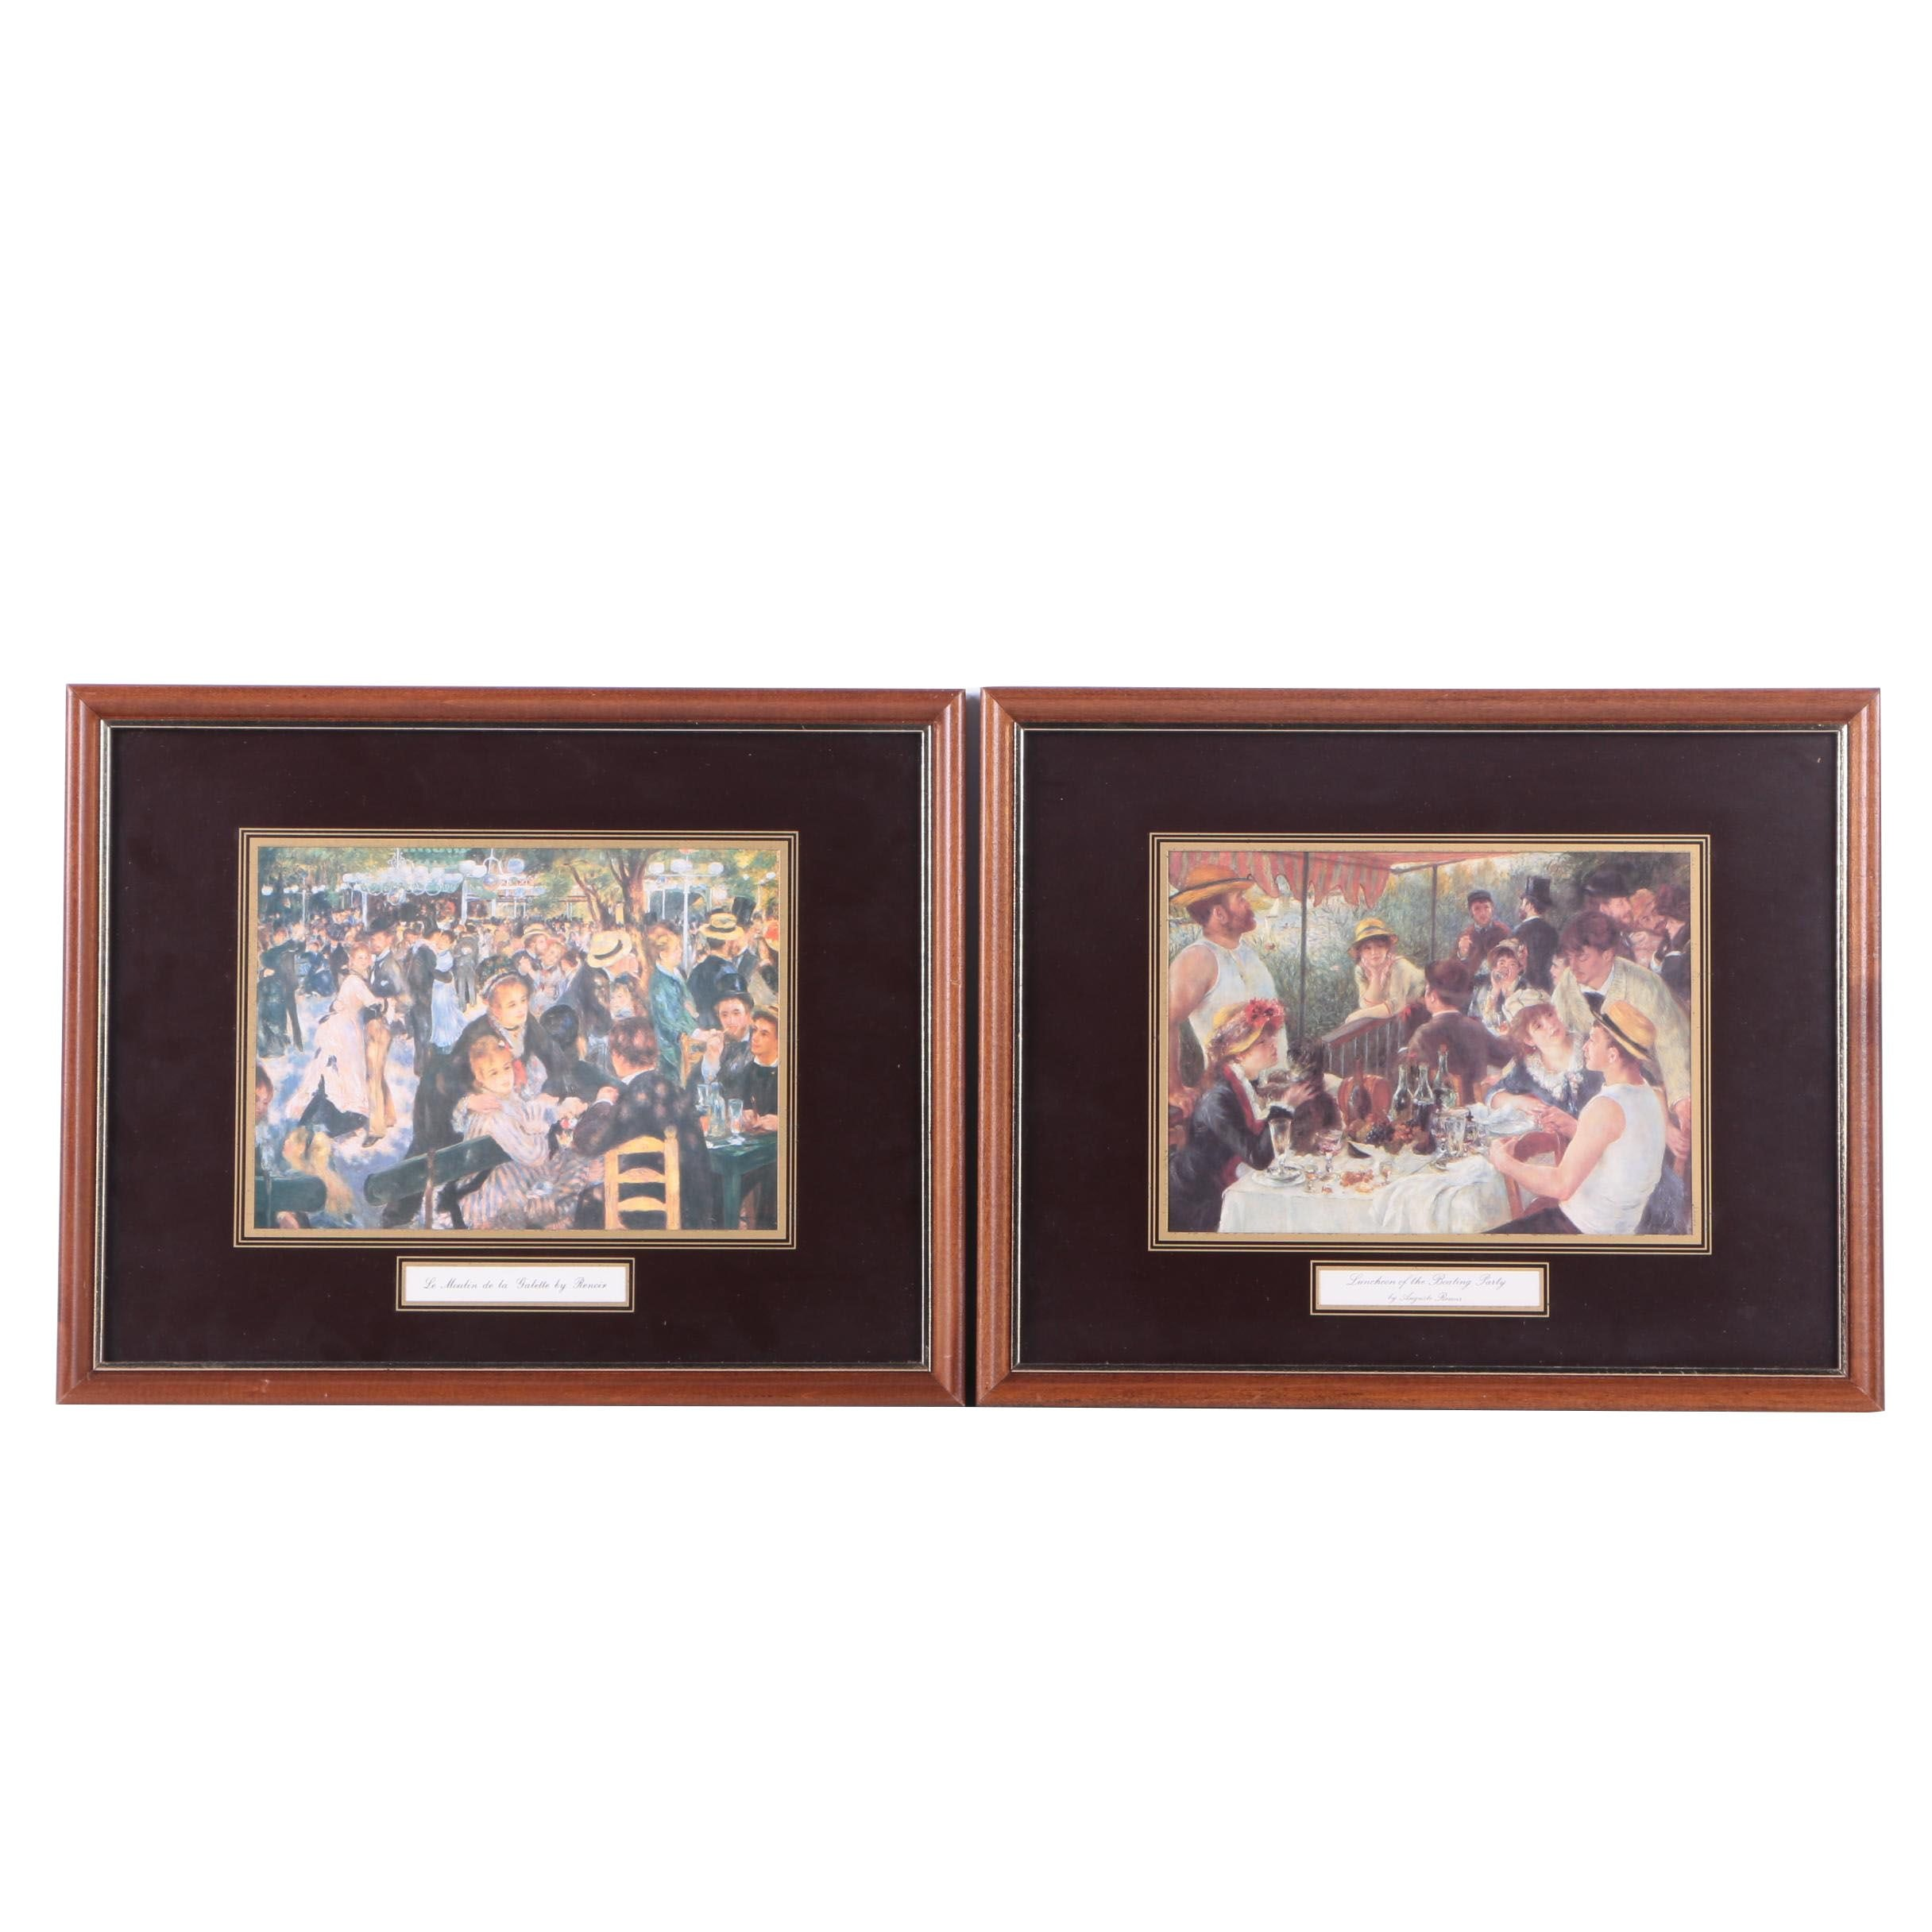 """Offset Lithographs After Renoir's """"Bal du moulin de la Galette"""" and """"Luncheon of the Boating Party"""""""